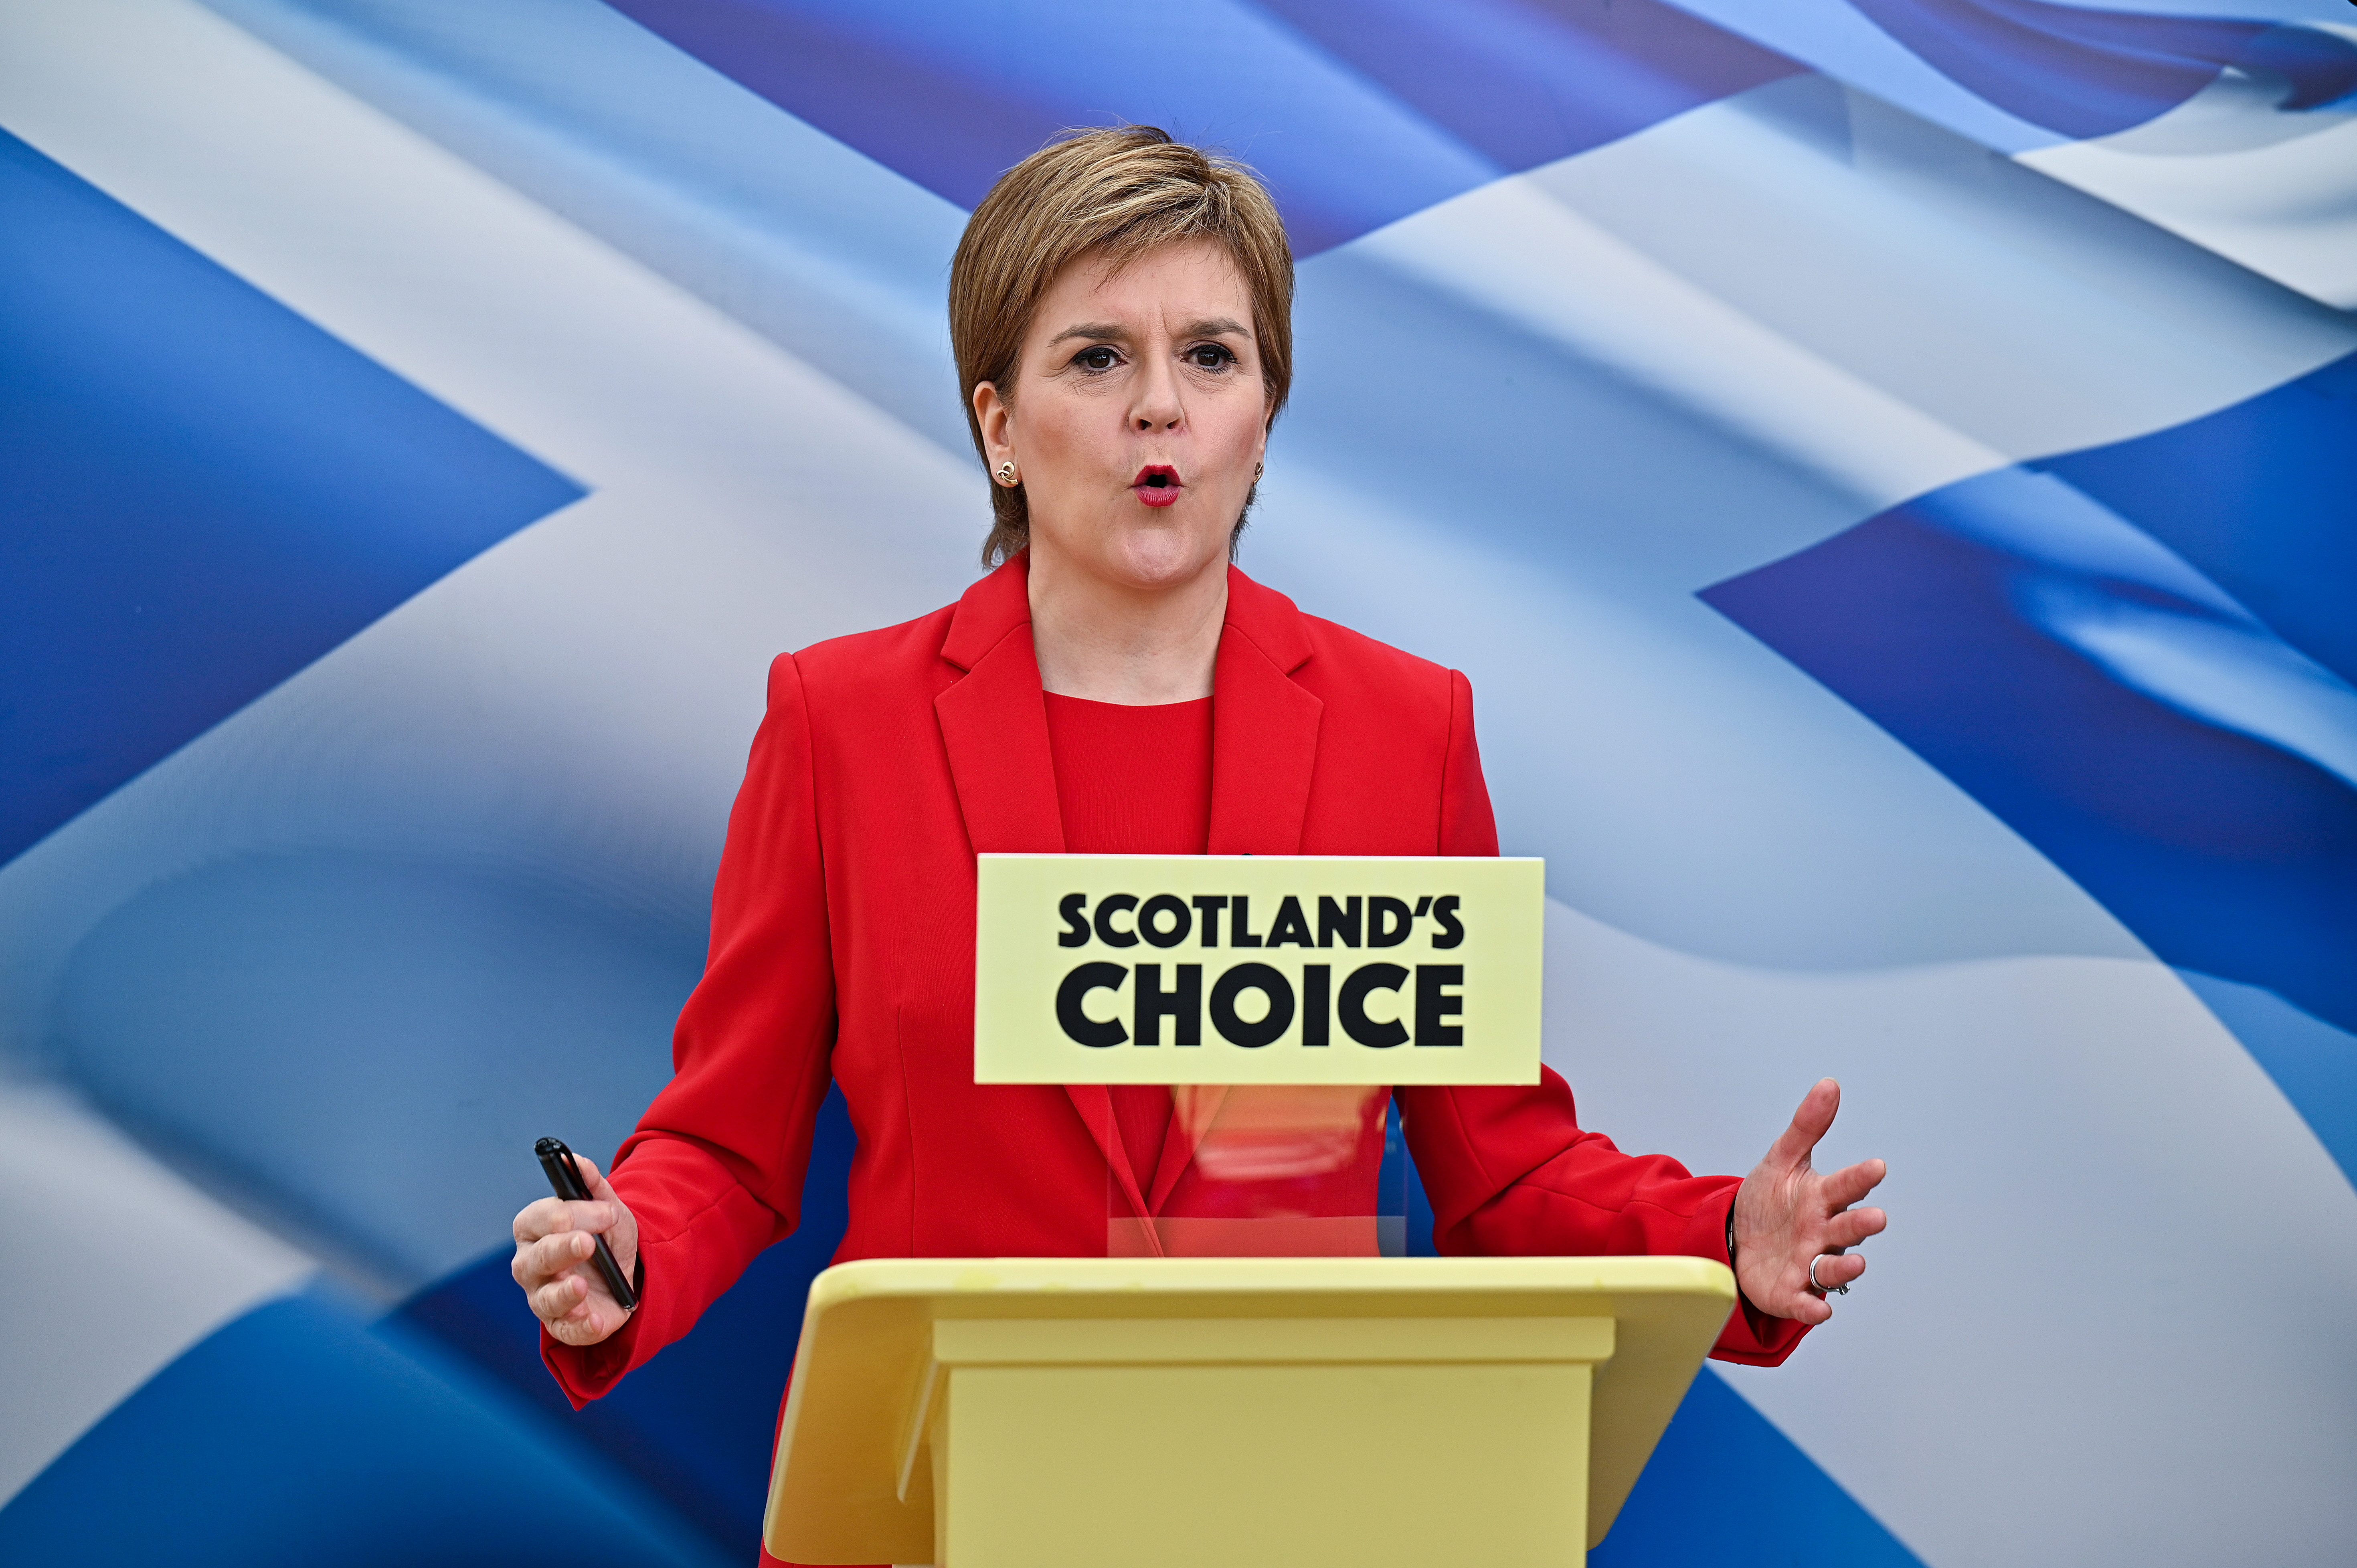 Scotland's First Minister and leader of the Scottish National Party, Nicola Sturgeon, launches her manifesto during the Scottish Parliamentary election in Glasgow, Scotland, Britain April 15, 2021 . Jeff J Mitchell/Pool via REUTERS